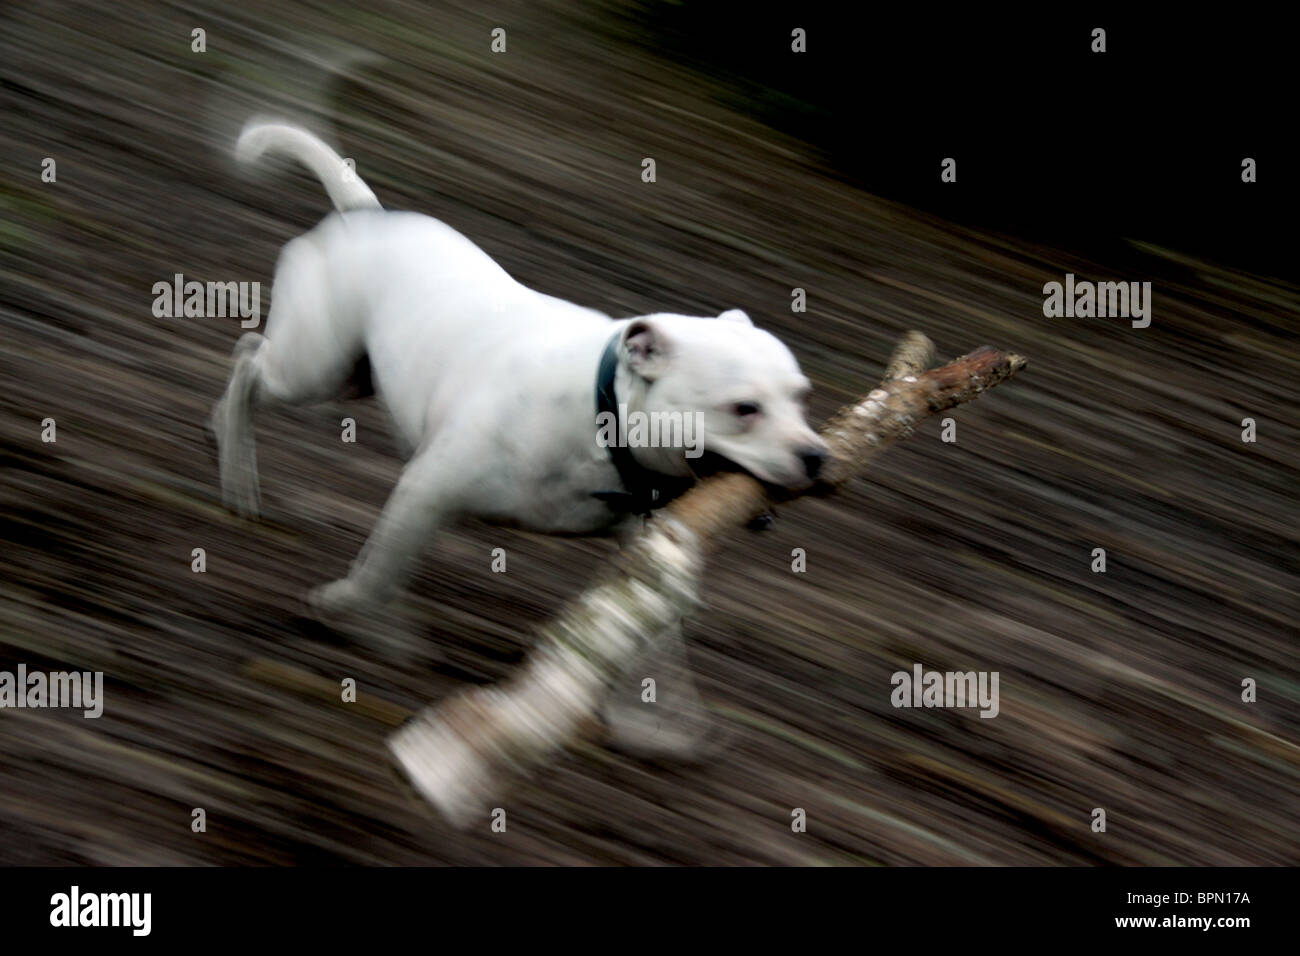 Staffordshire Bull Terrier running with a large stick - Stock Image